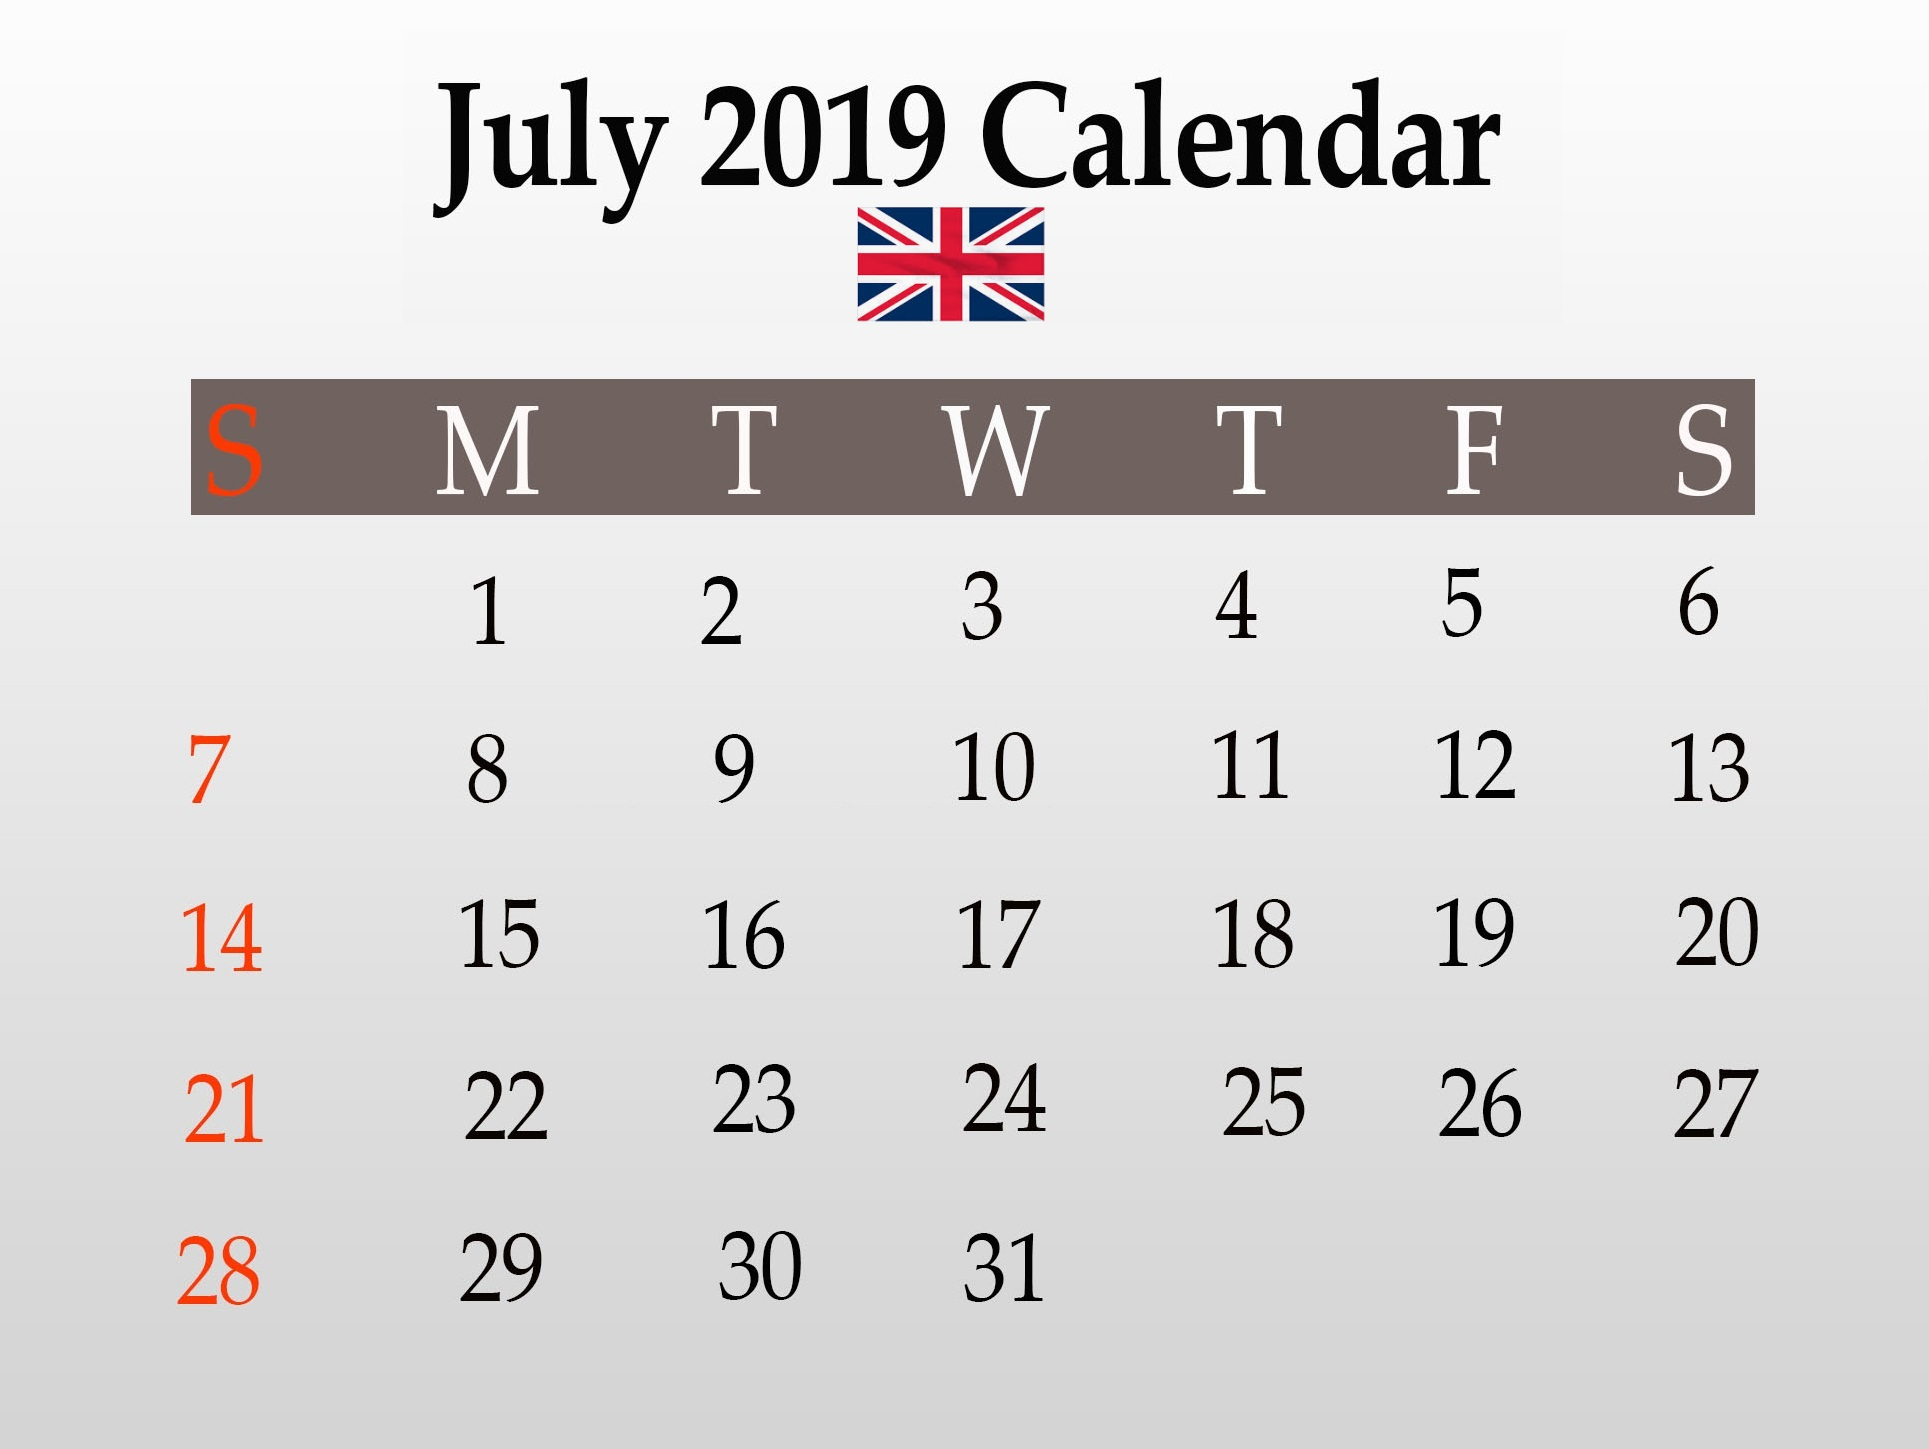 July 2019 UK Federal Holidays Calendar